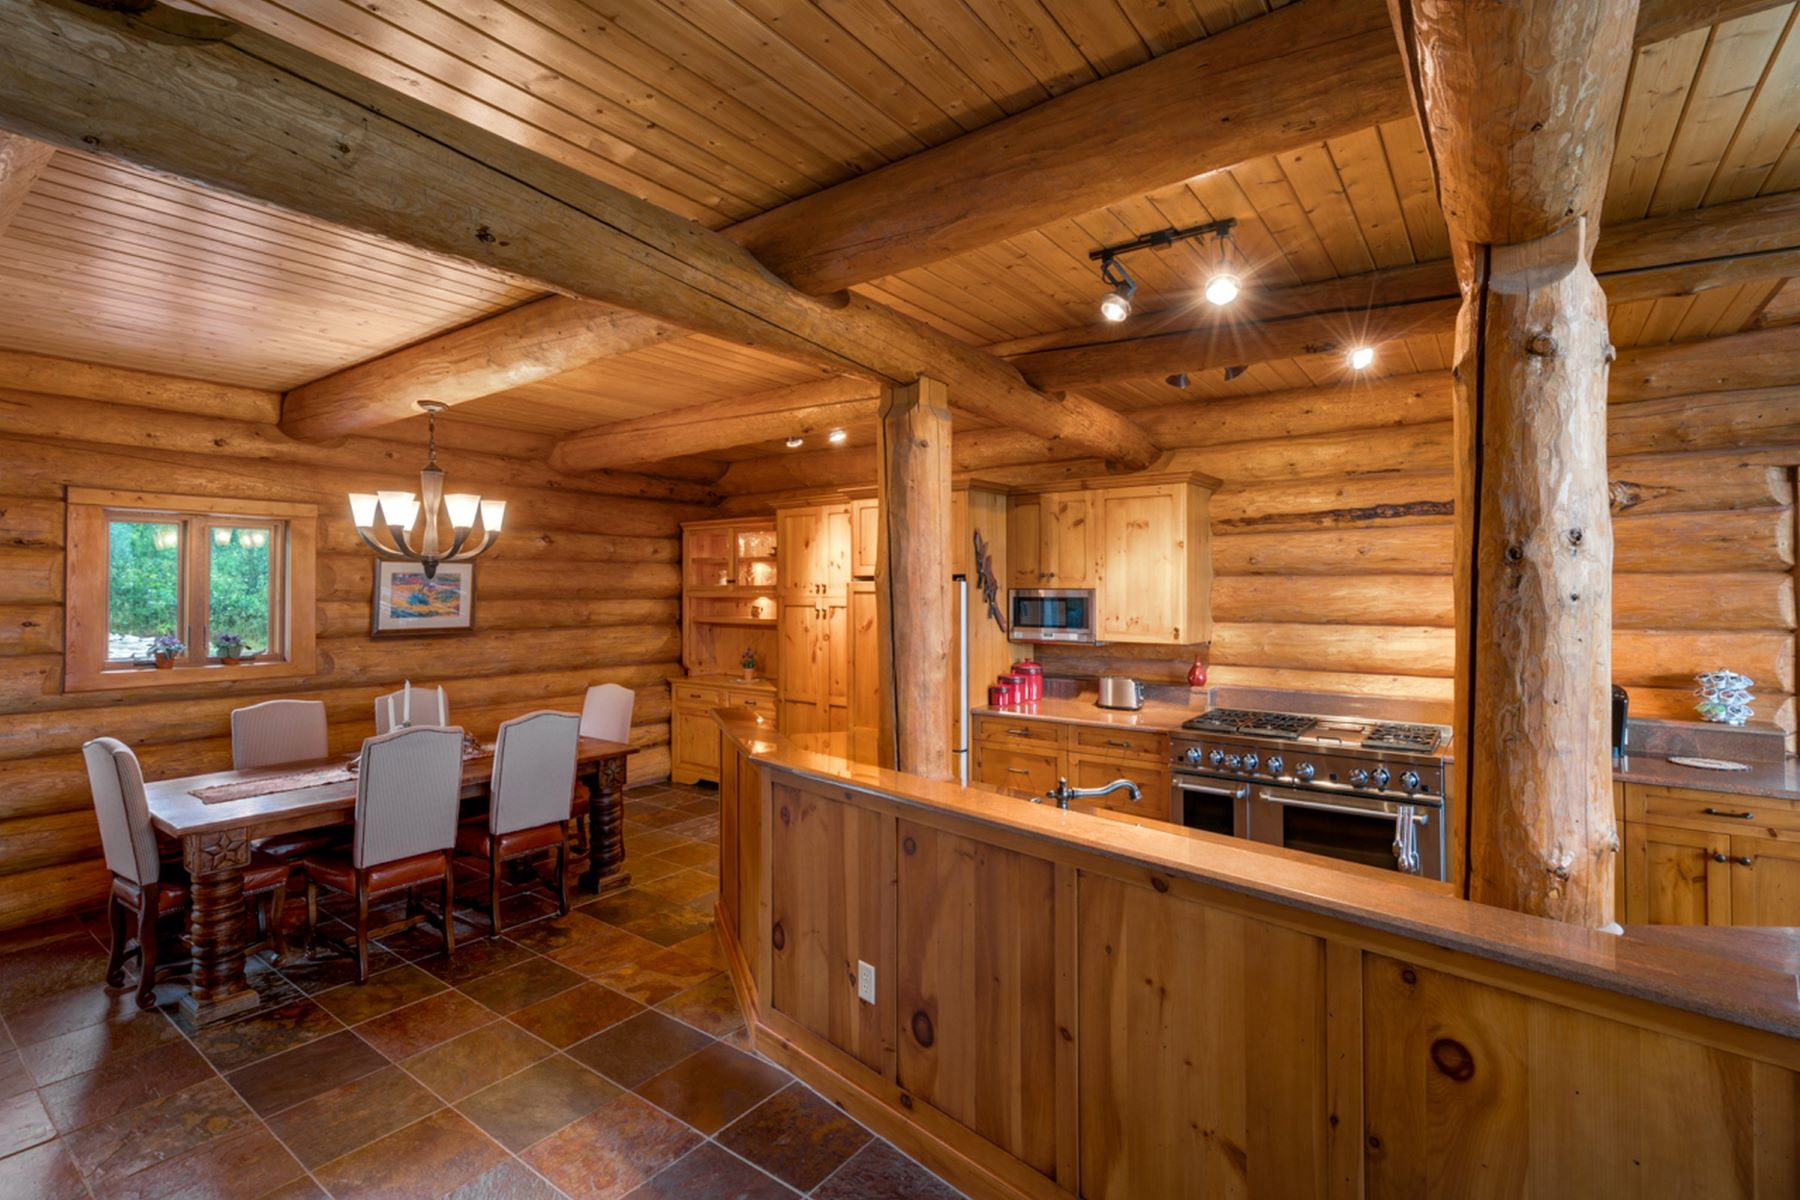 Additional photo for property listing at Epic Rocky Mountain Log Home 47505 County Road 52W Steamboat Springs, Colorado 80487 Estados Unidos